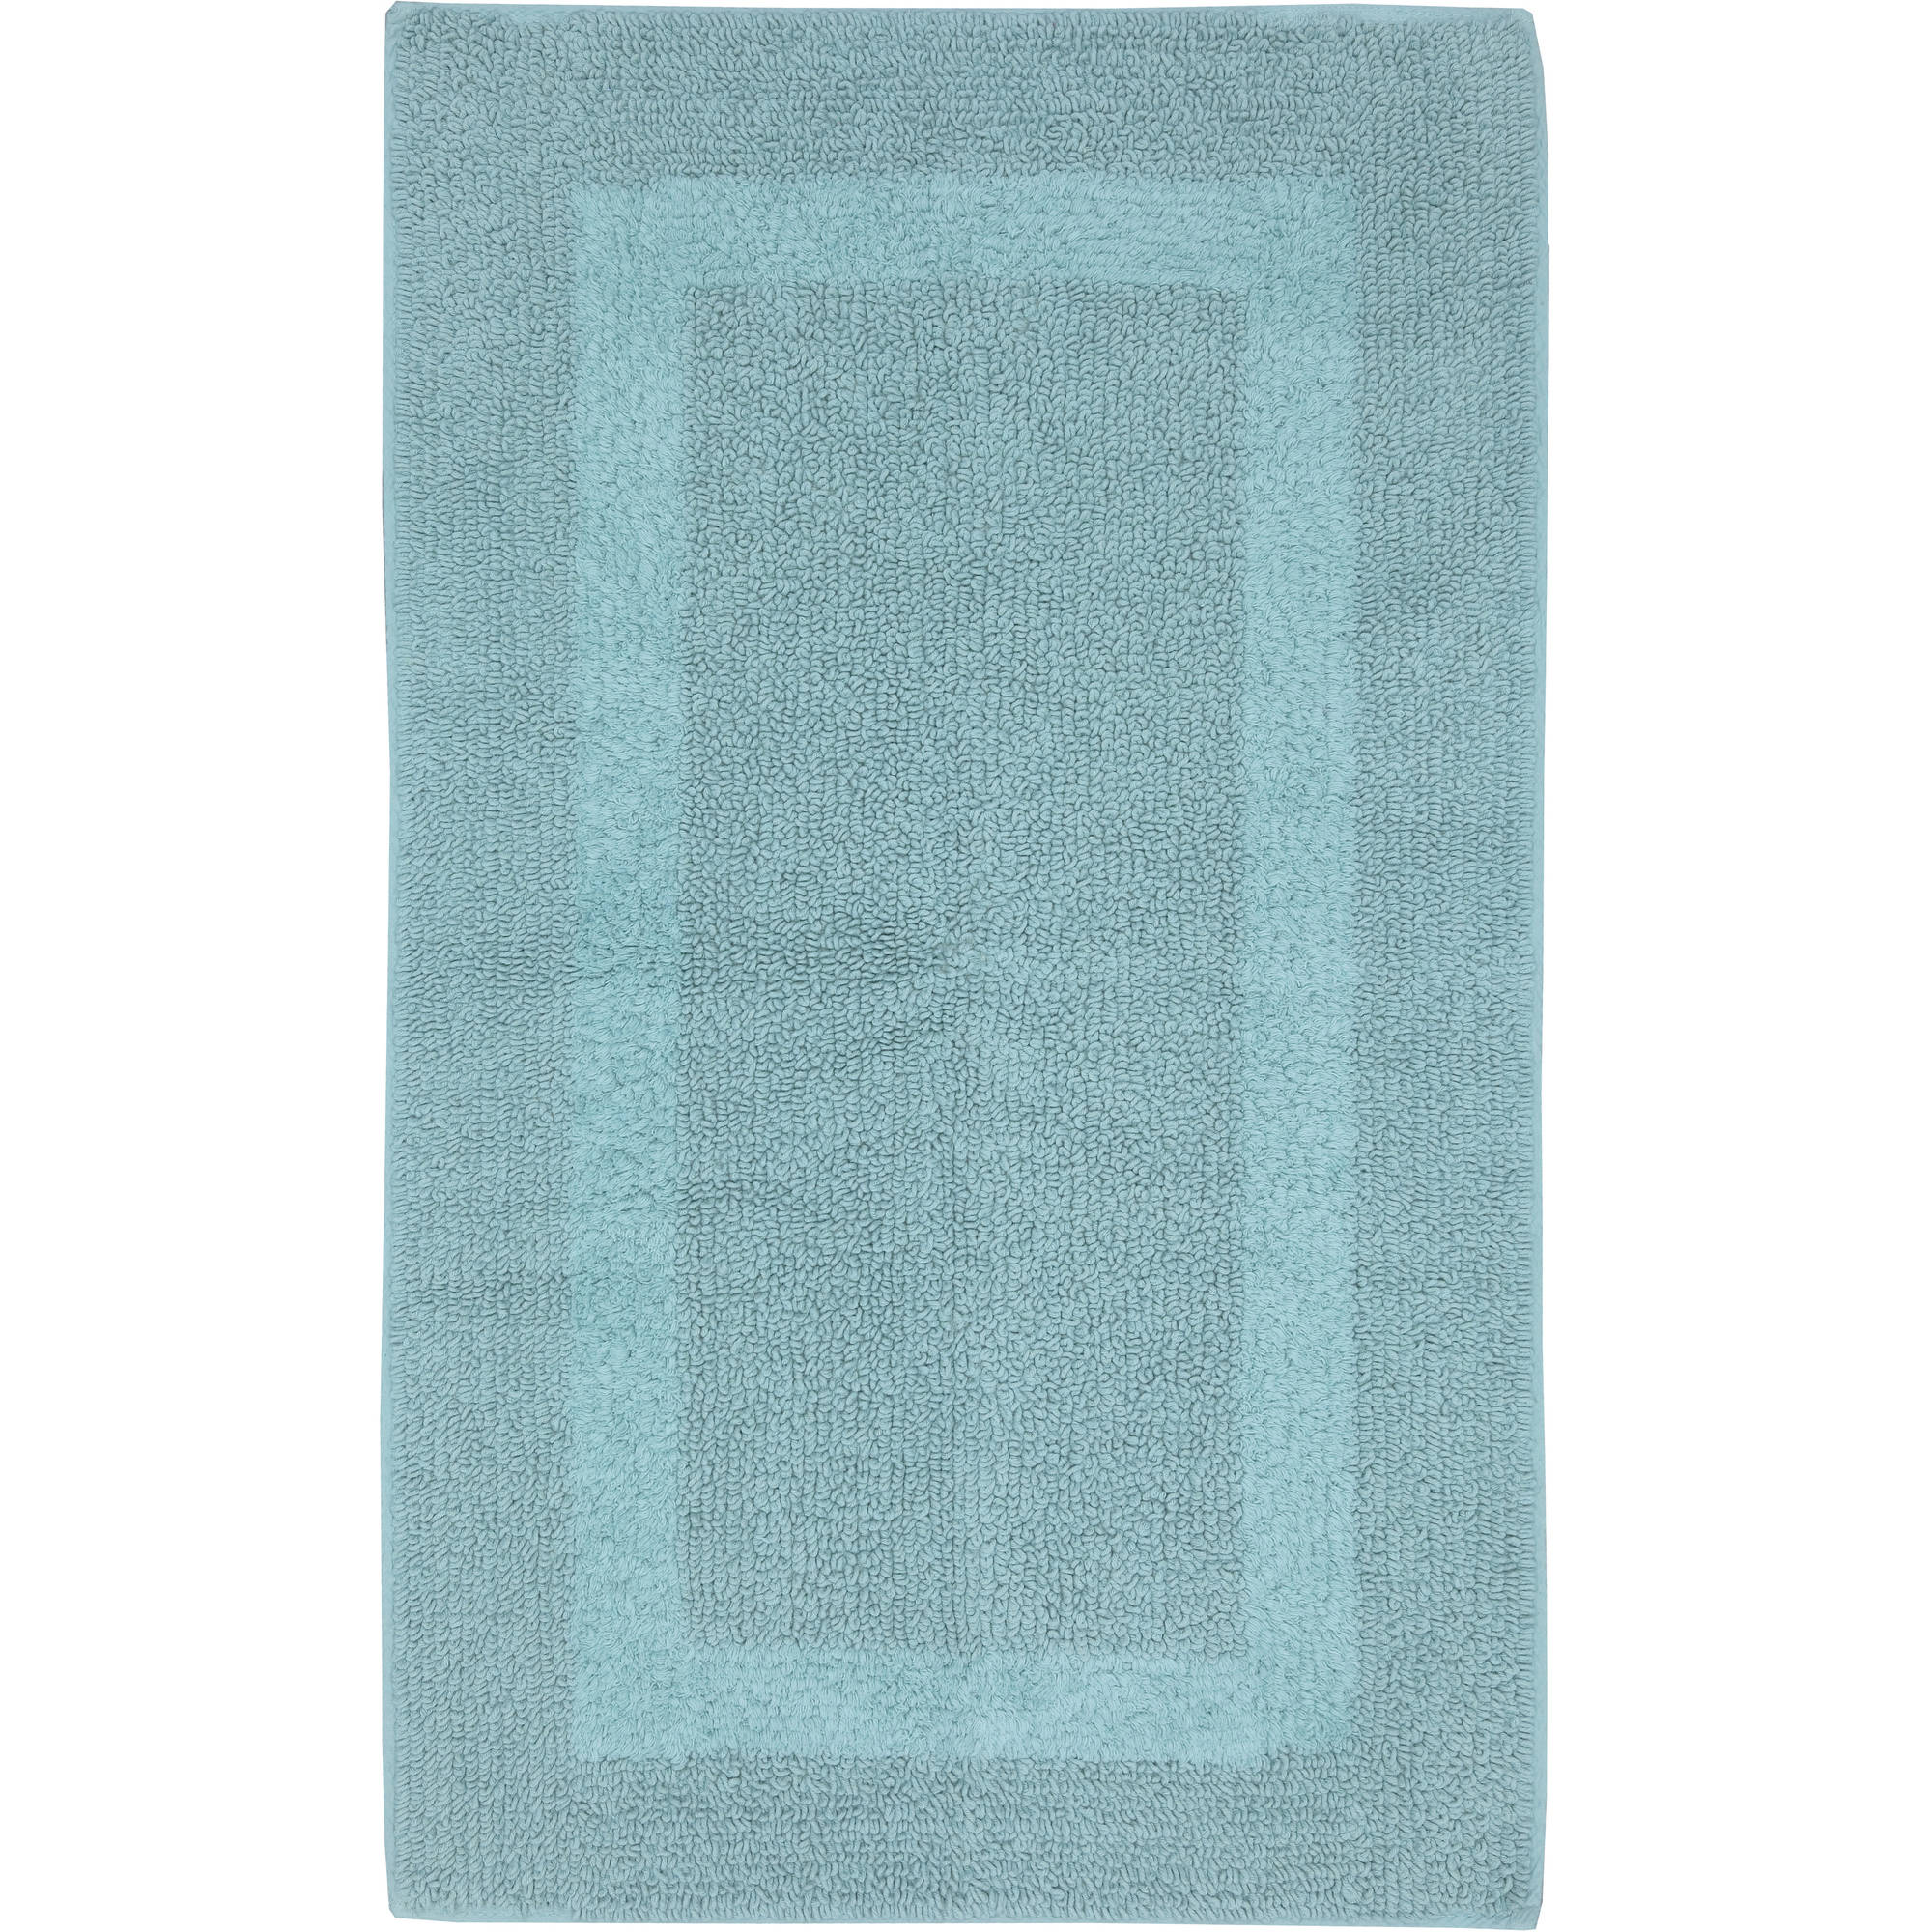 Better Homes and Gardens Cotton Reversible Bath Rug Collection by Mohawk Home